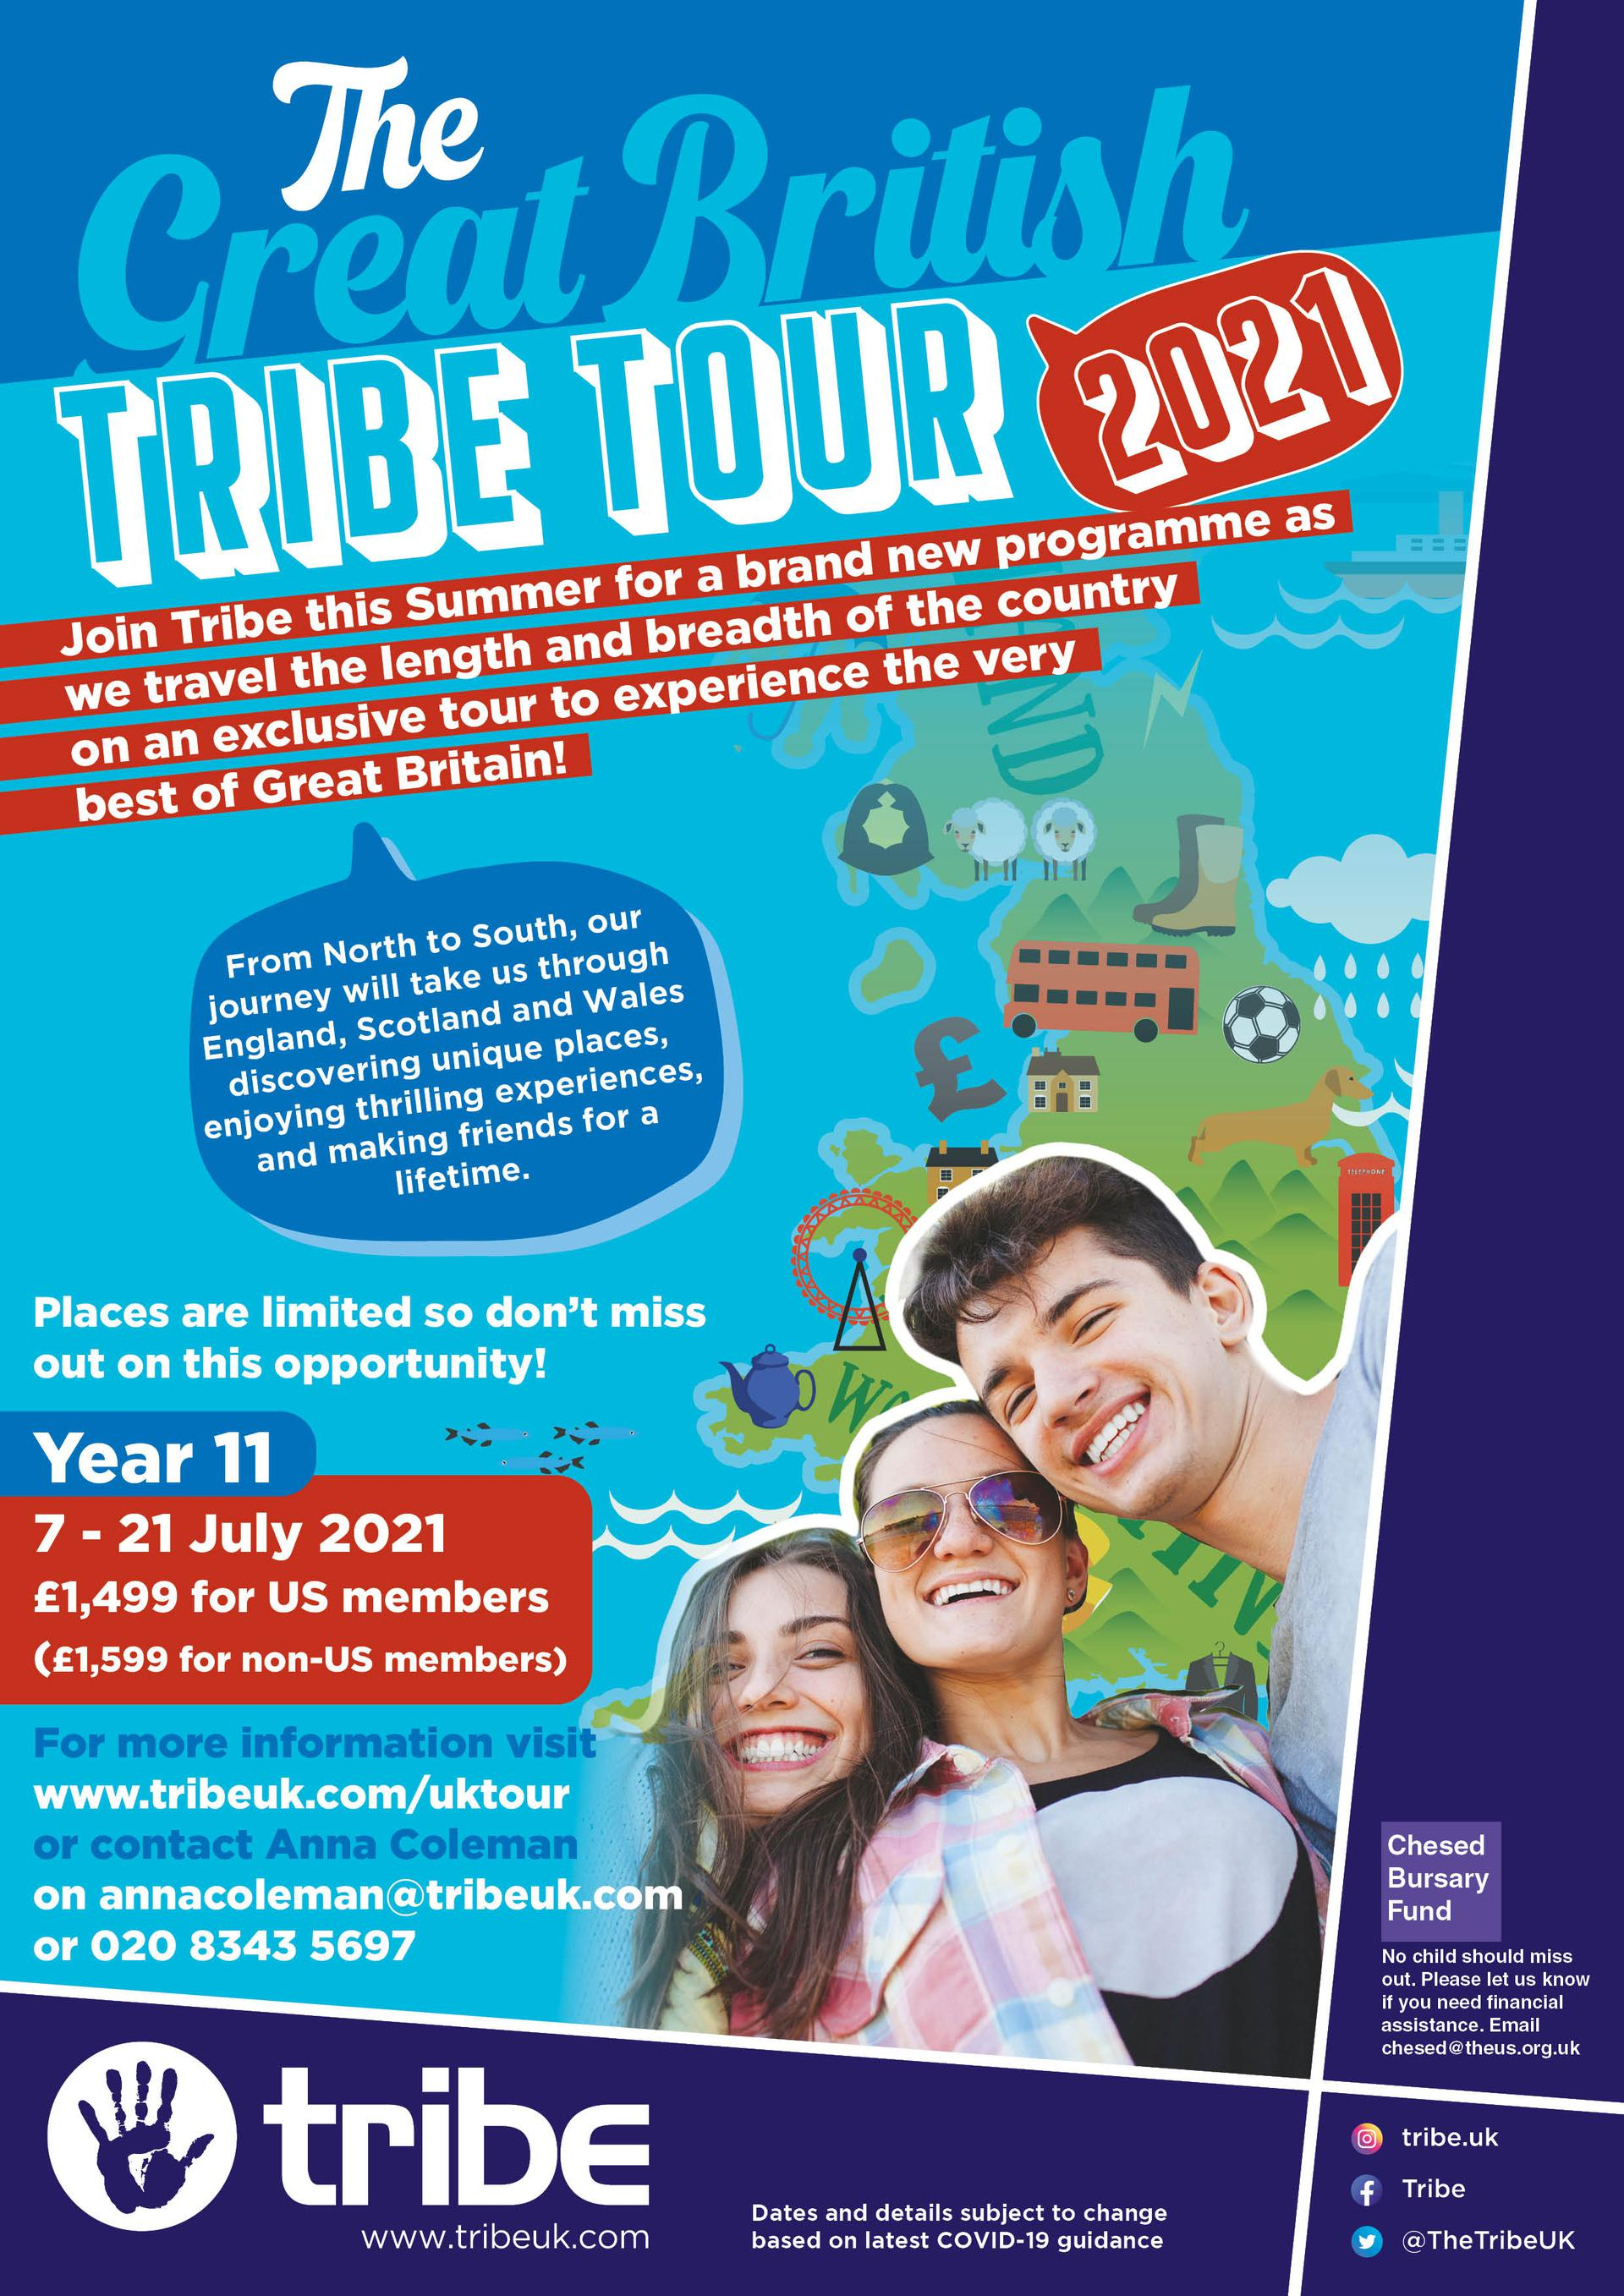 The Great British Tribe Tour